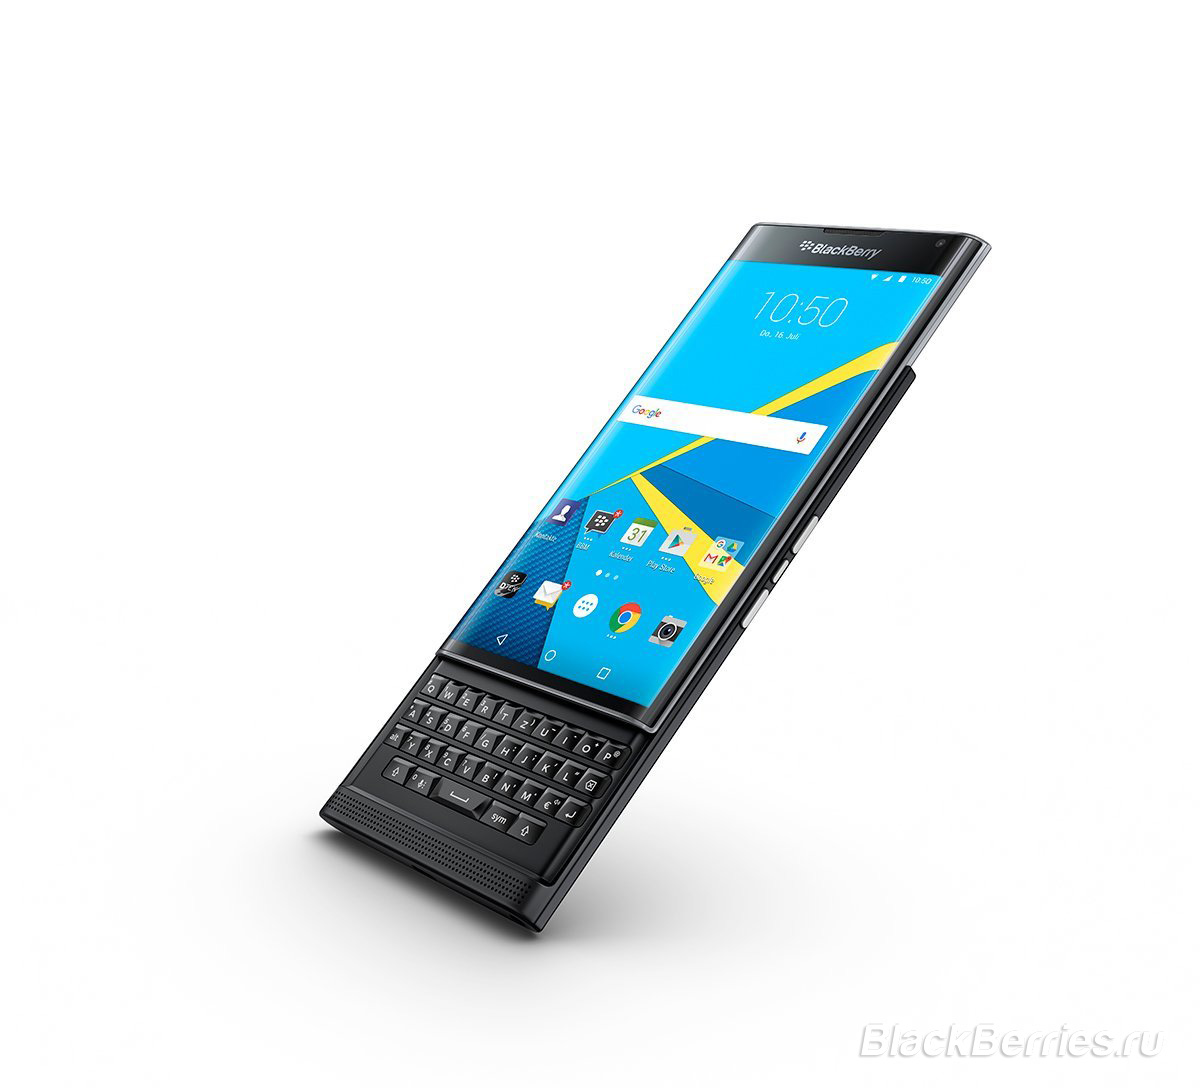 BlackBerry-Priv-Shop-8 copy